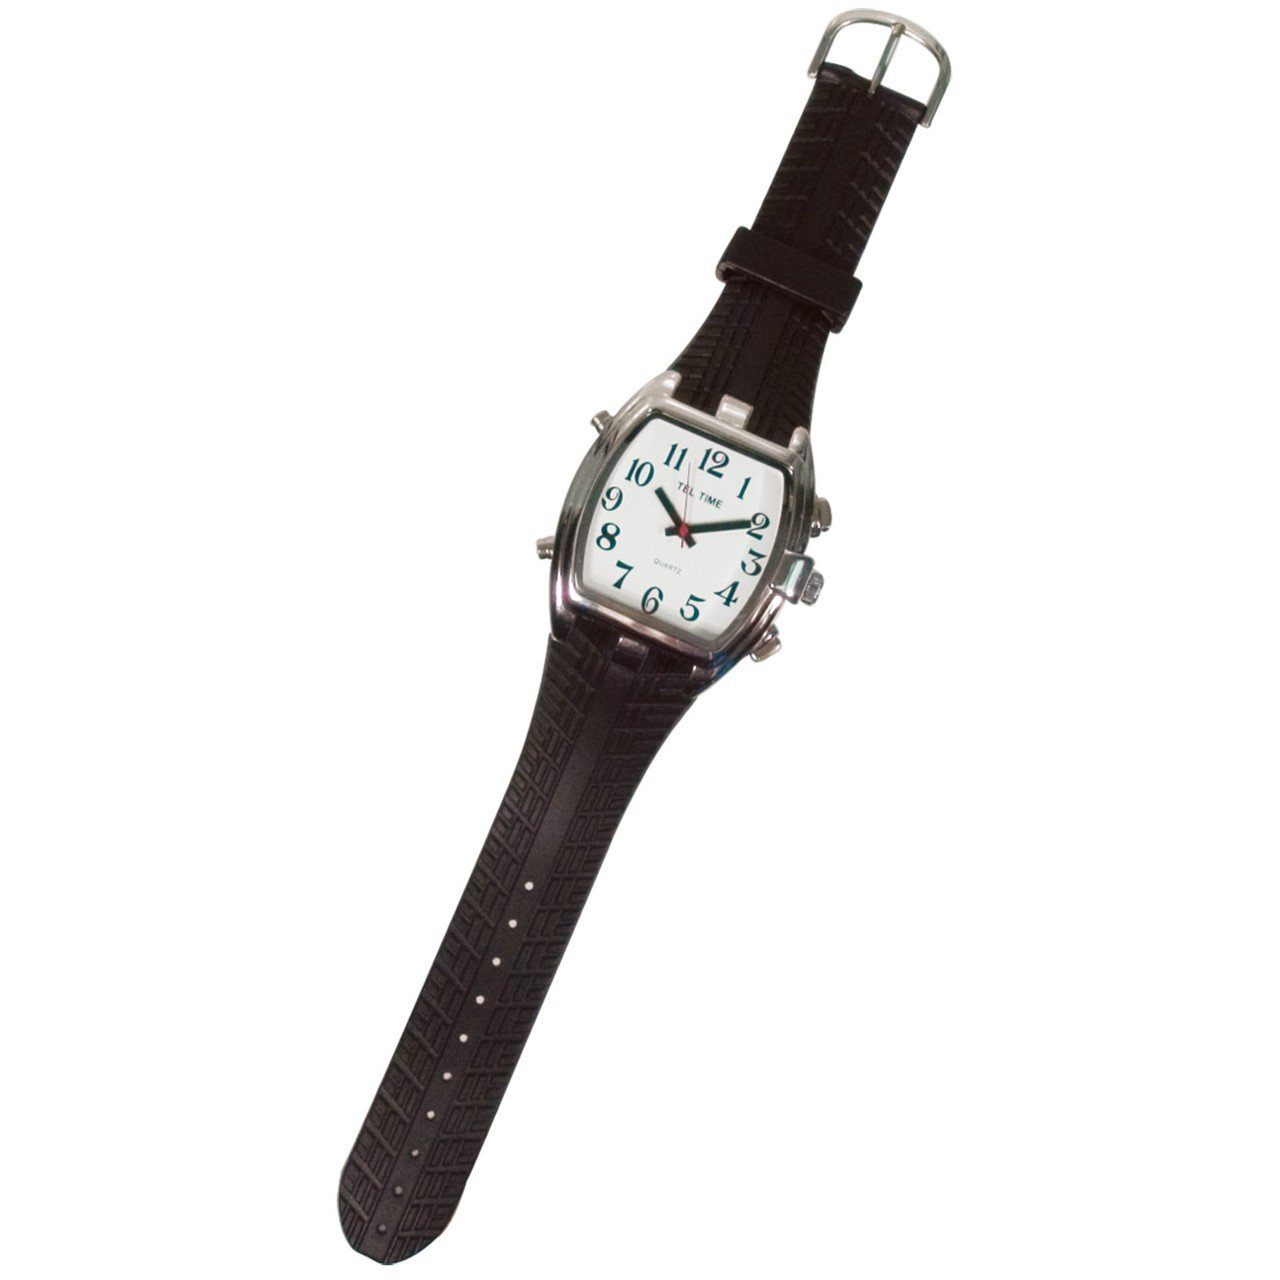 Tel-Time Mens Low Vision Talking Watch- White Face by MaxiAids